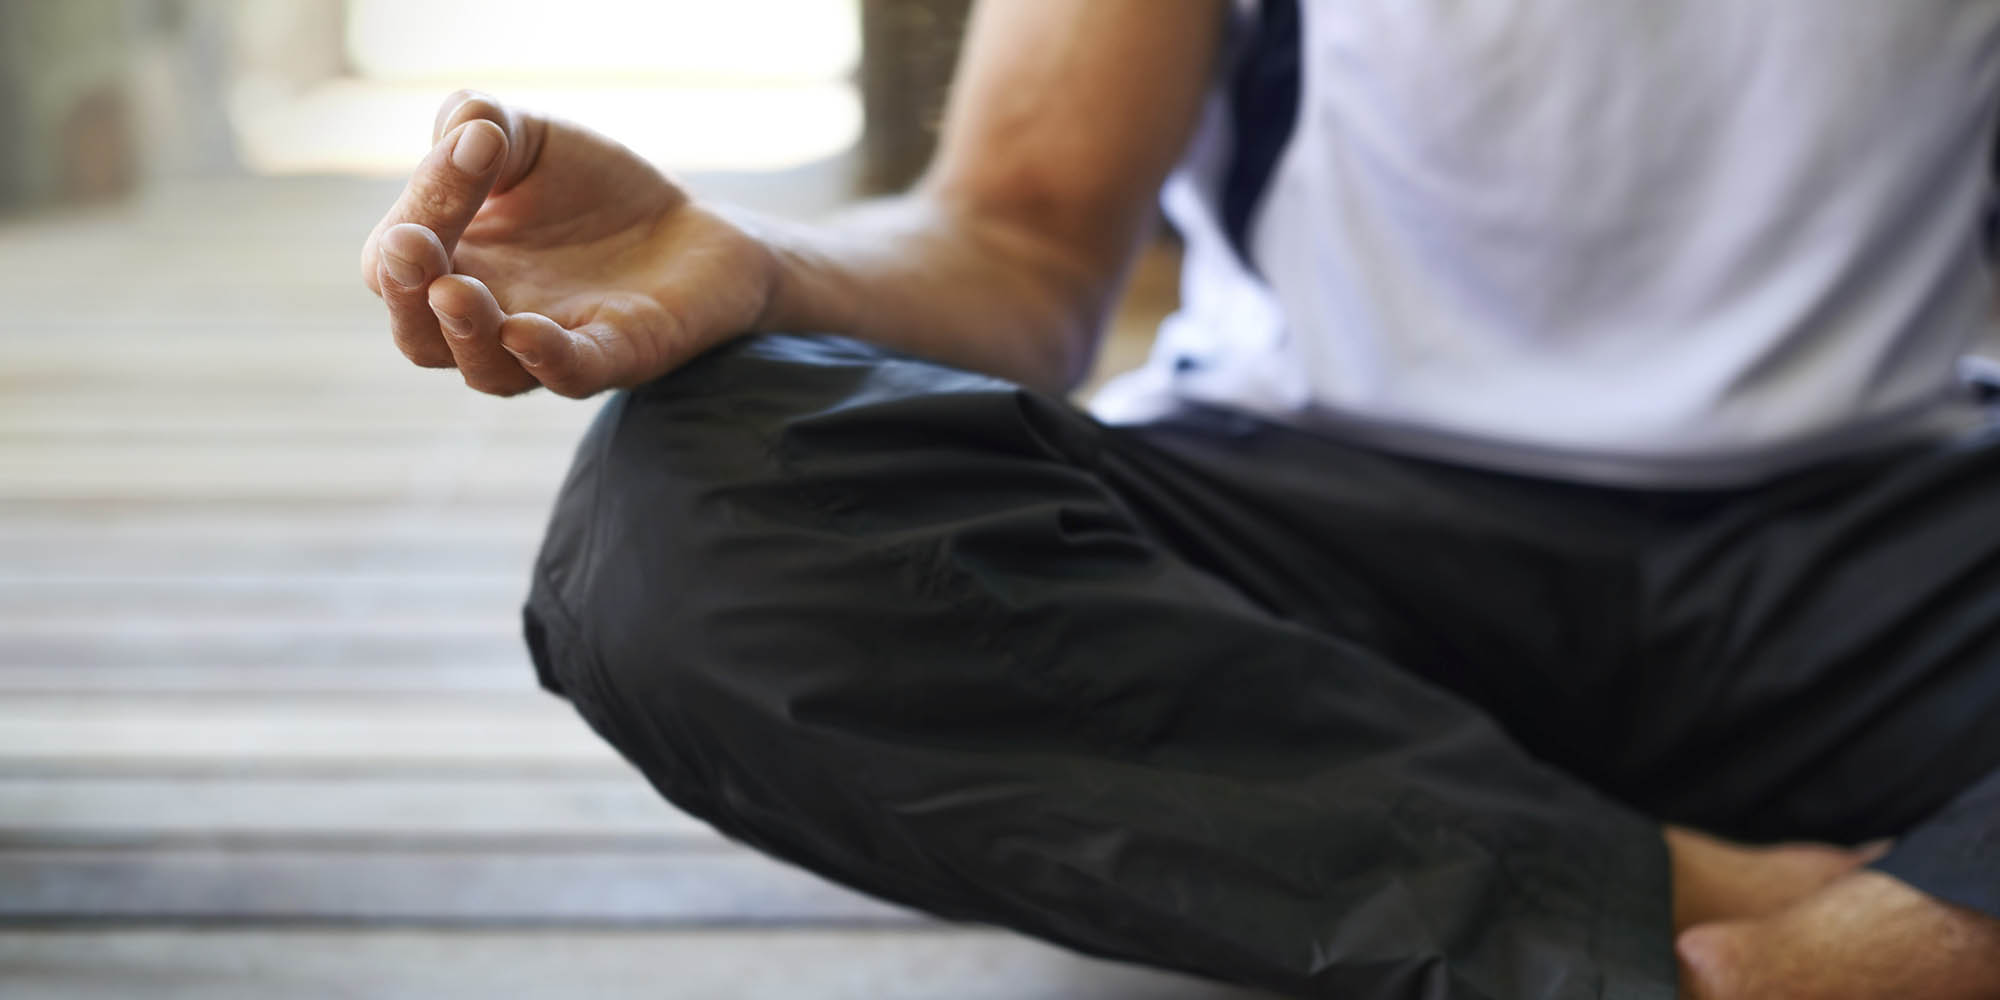 Could Meditation Heal Your Injuries?